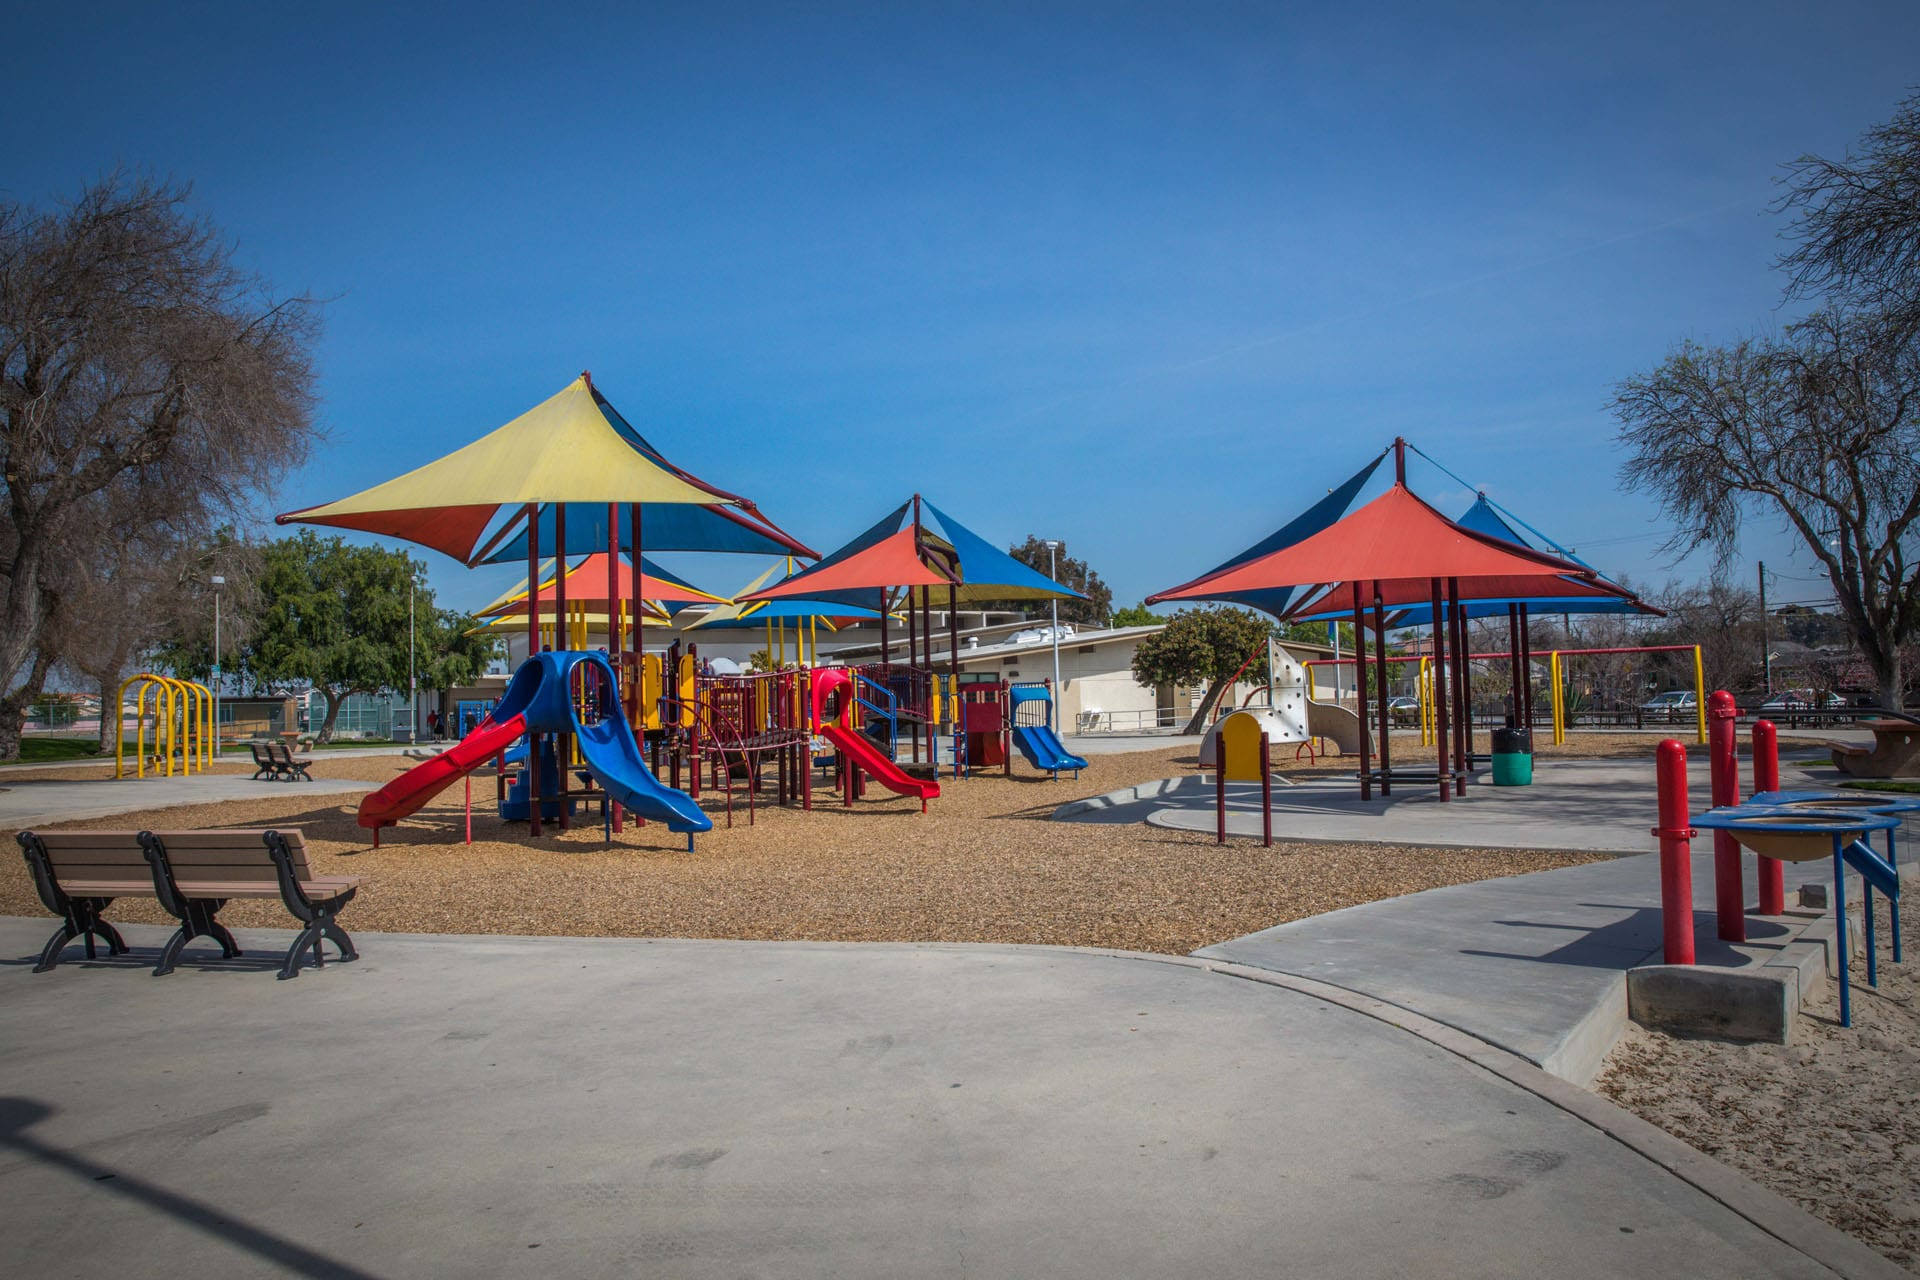 Tented playground units with benches nearby